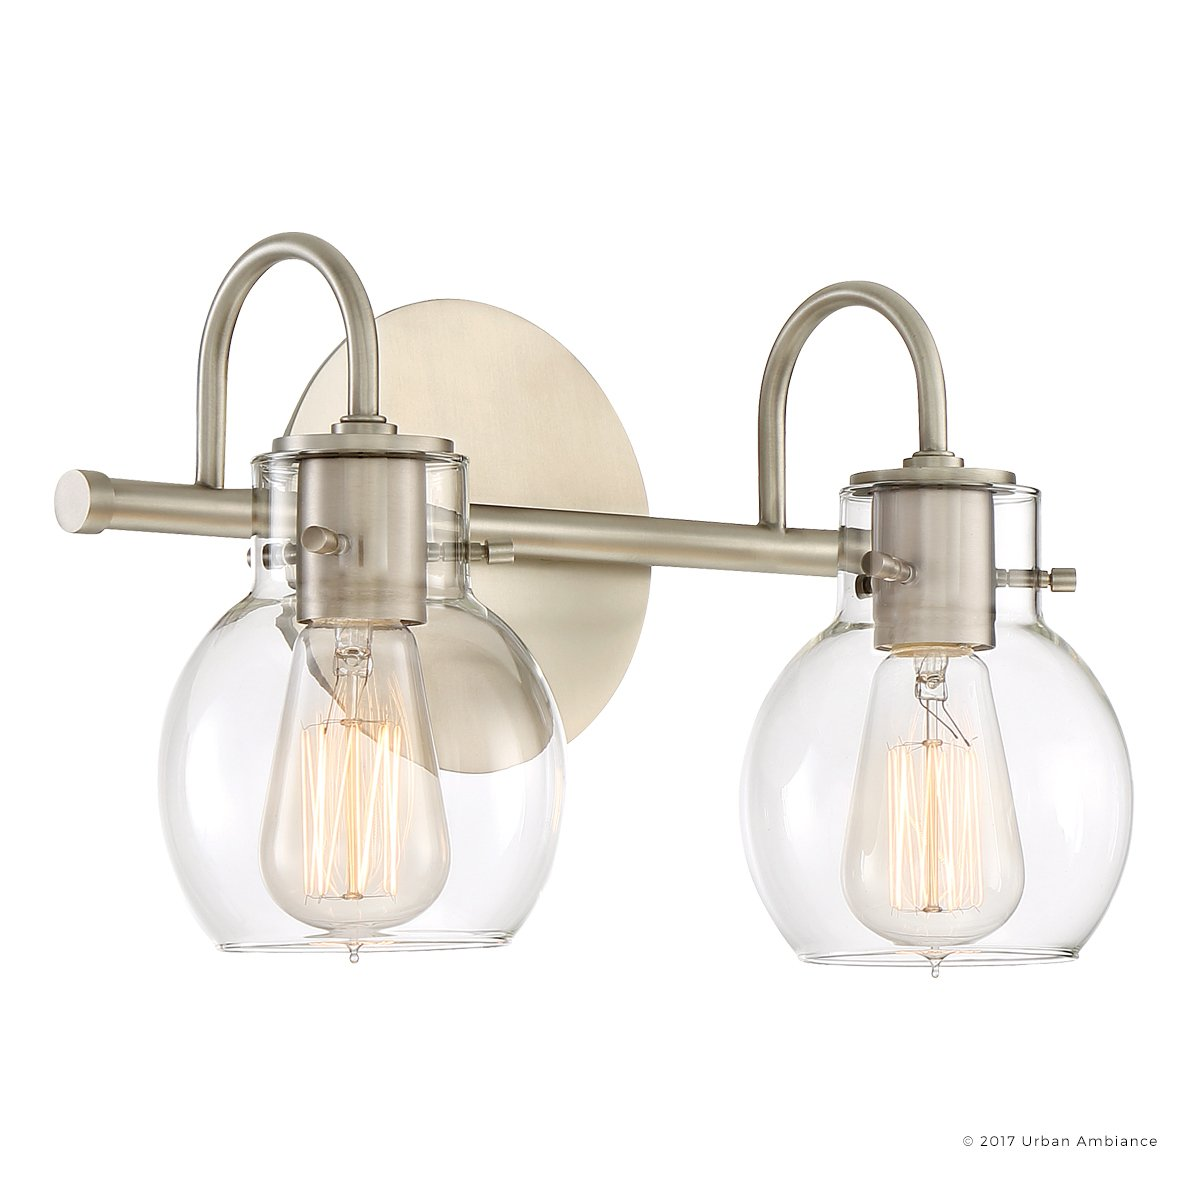 Luxury Vintage Bathroom Light, Medium Size: 9''H x 14''W, with Industrial Style Elements, Floating Glass Design, Aged Nickel Finish and Clear Glass, Includes Edison Bulbs, UQL2040 by Urban Ambiance by Urban Ambiance